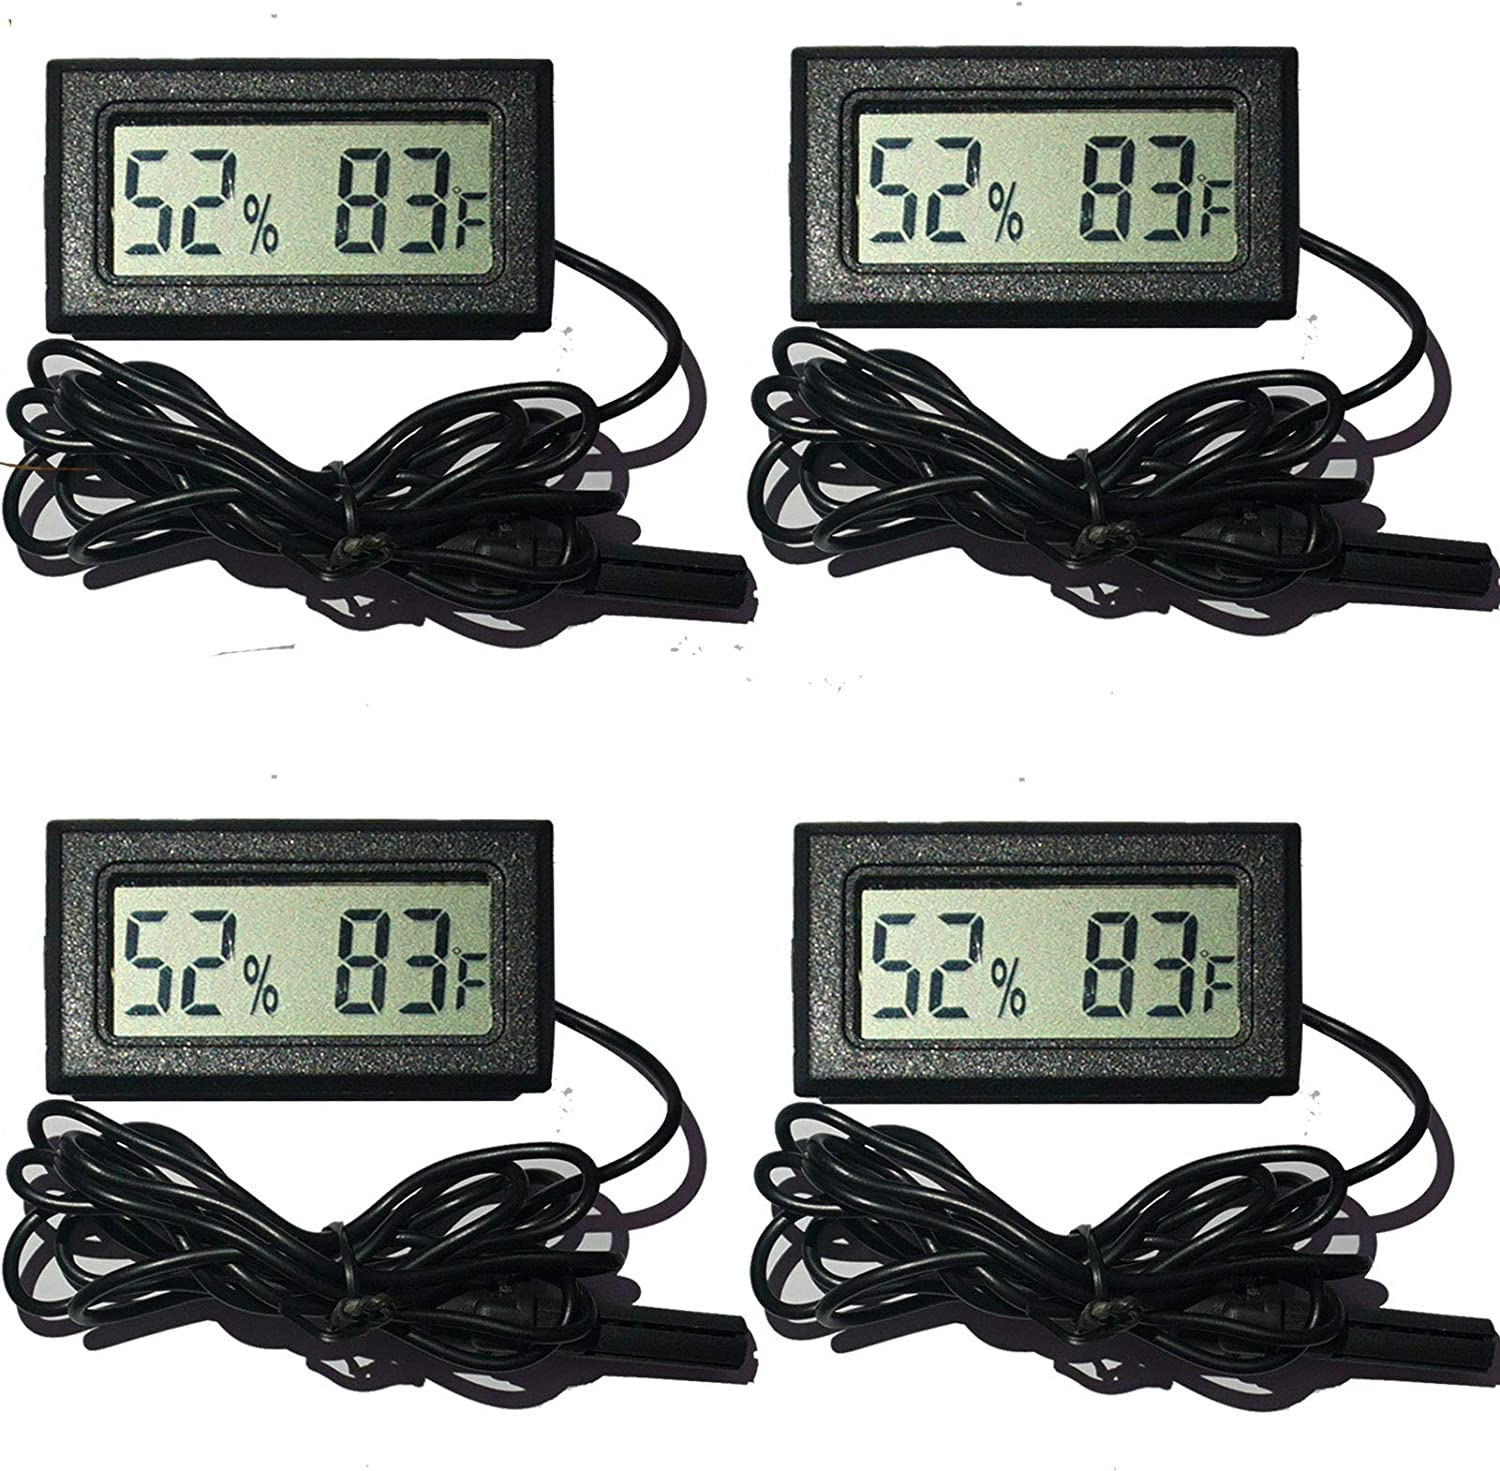 Digital Humidity Temperature Gauge with LCD Dispaly for Humidors Home Greenhouse Babyroom Reptile Incubator Brooders Indoor Room Fahrenheit ℉ 2 Pack Mini Hygrometer Thermometer Meter with Probe